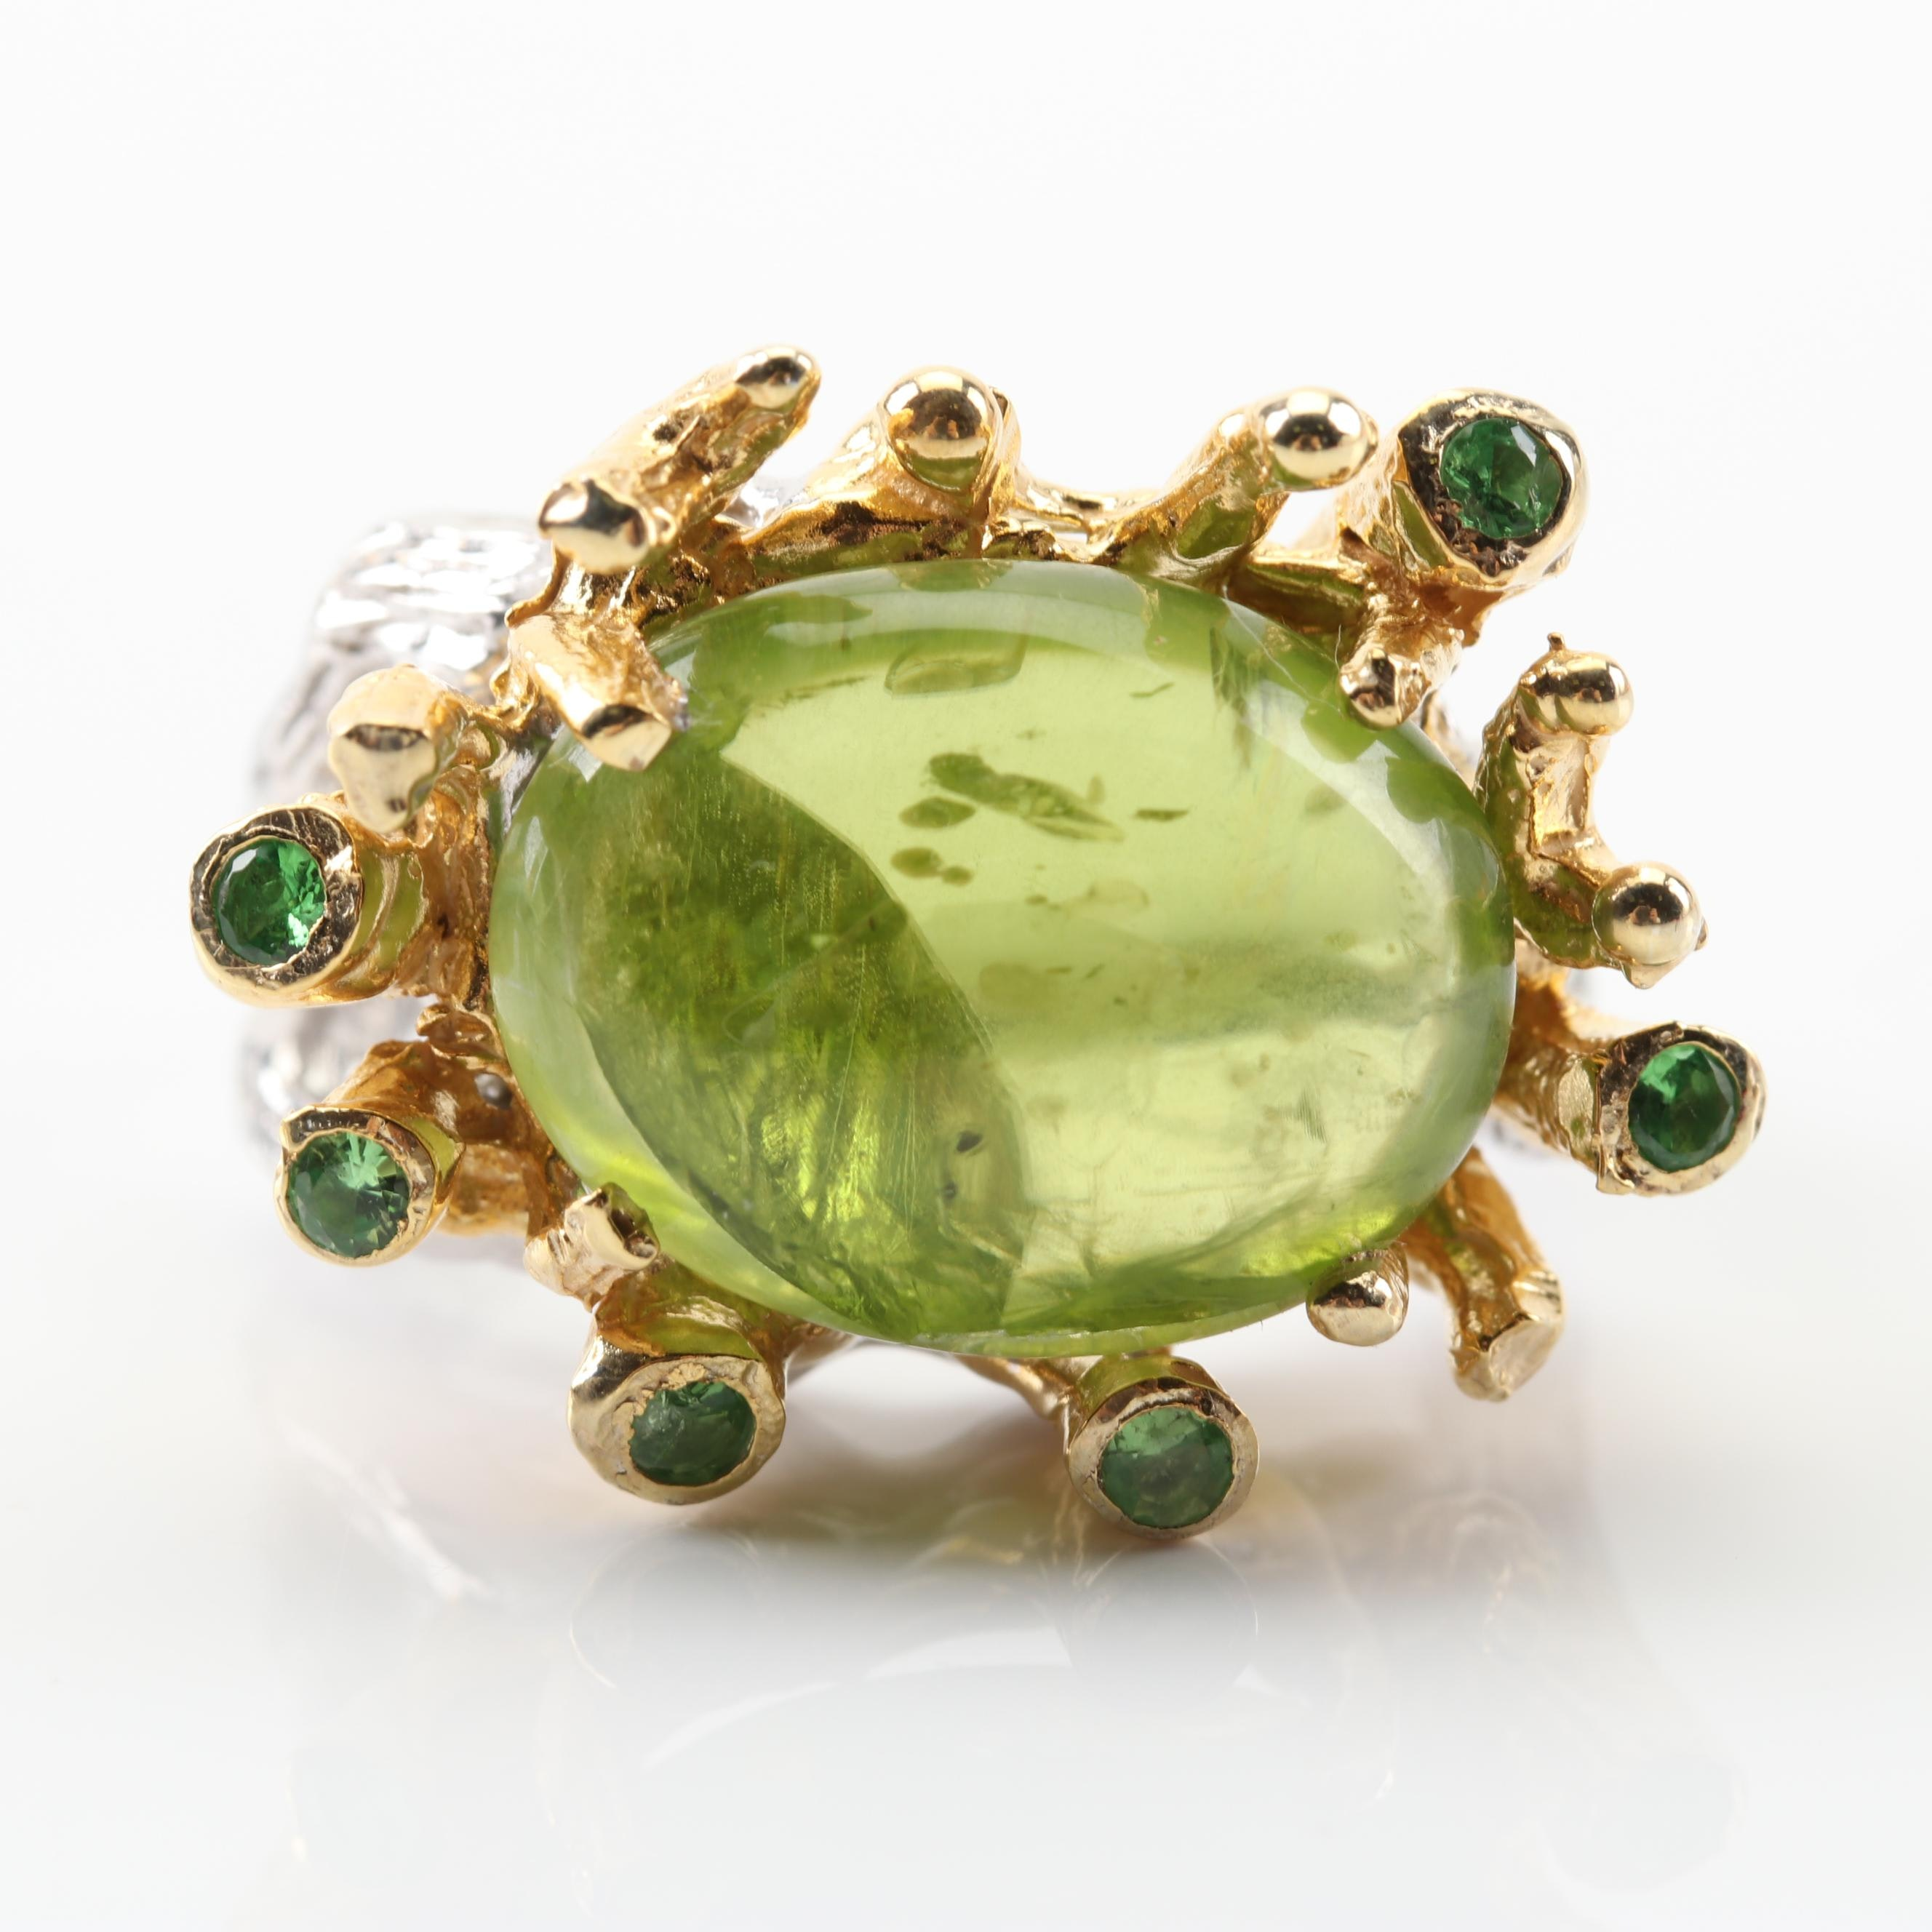 Sterling Silver 14.36 CTW Peridot Cabochon Ring With Gold Wash Accents